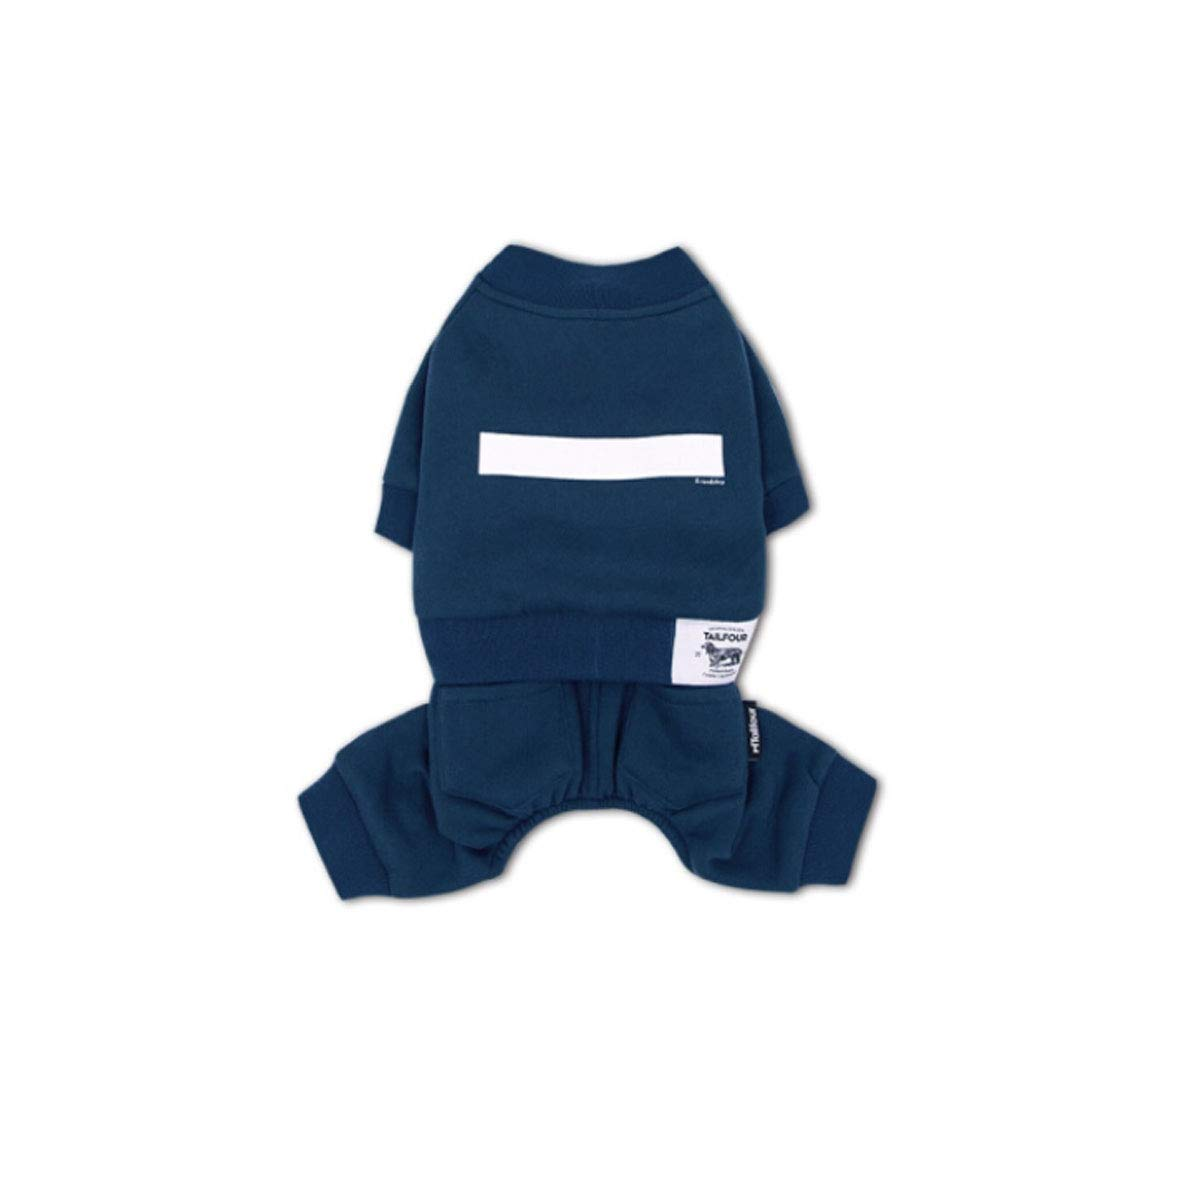 Huijunwenti Winter New Teddy Cotton Coat Pet Dog Clothes Small Dog Cotton Jacket Double-sided Cotton Vest Cat SN8250 TFCLO001402 XS fashion (color   Number 17, Size   M)